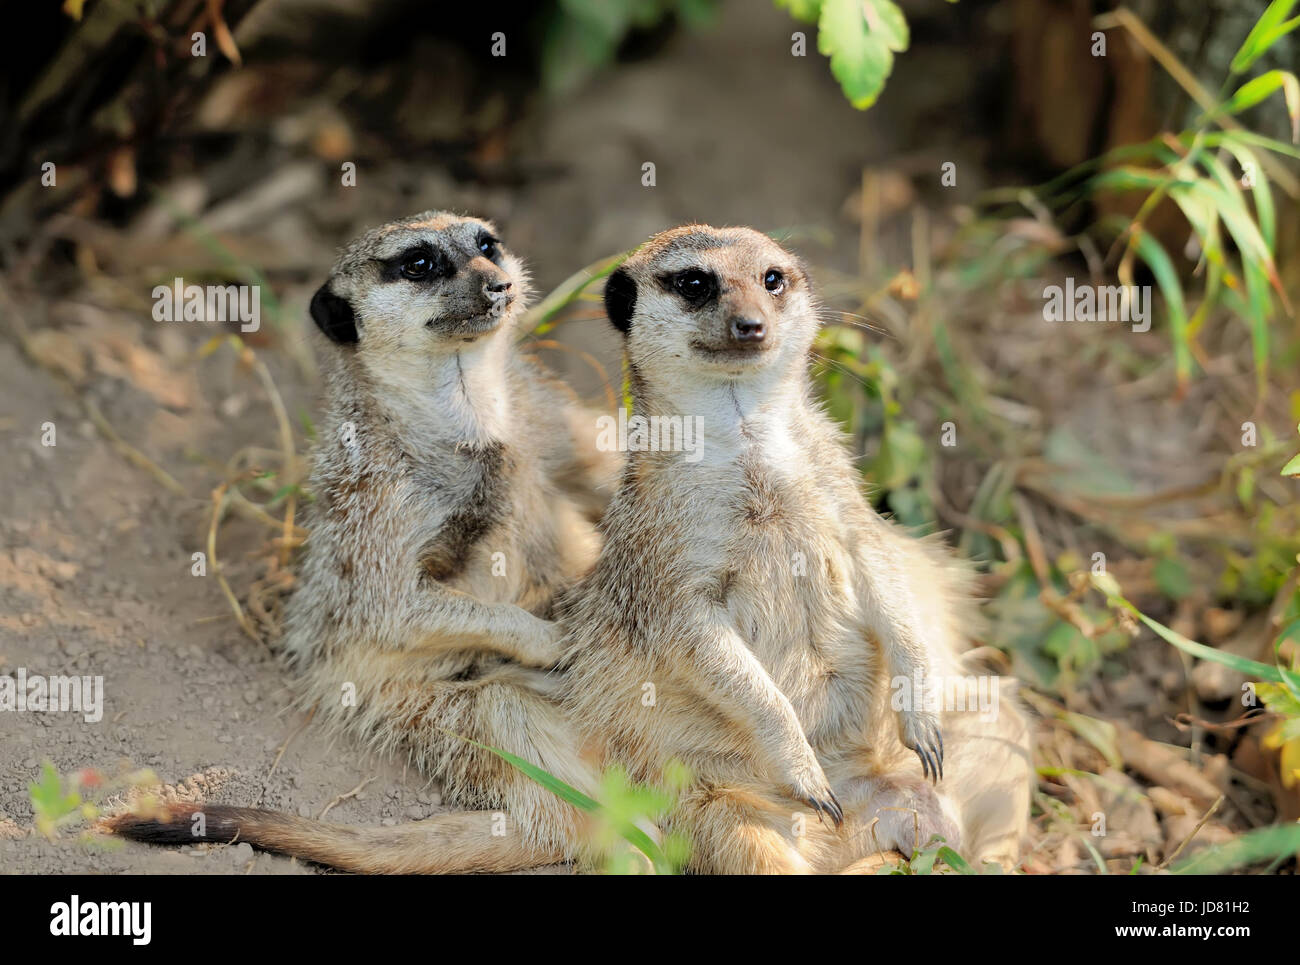 Two young meerkat looking alert - Stock Image